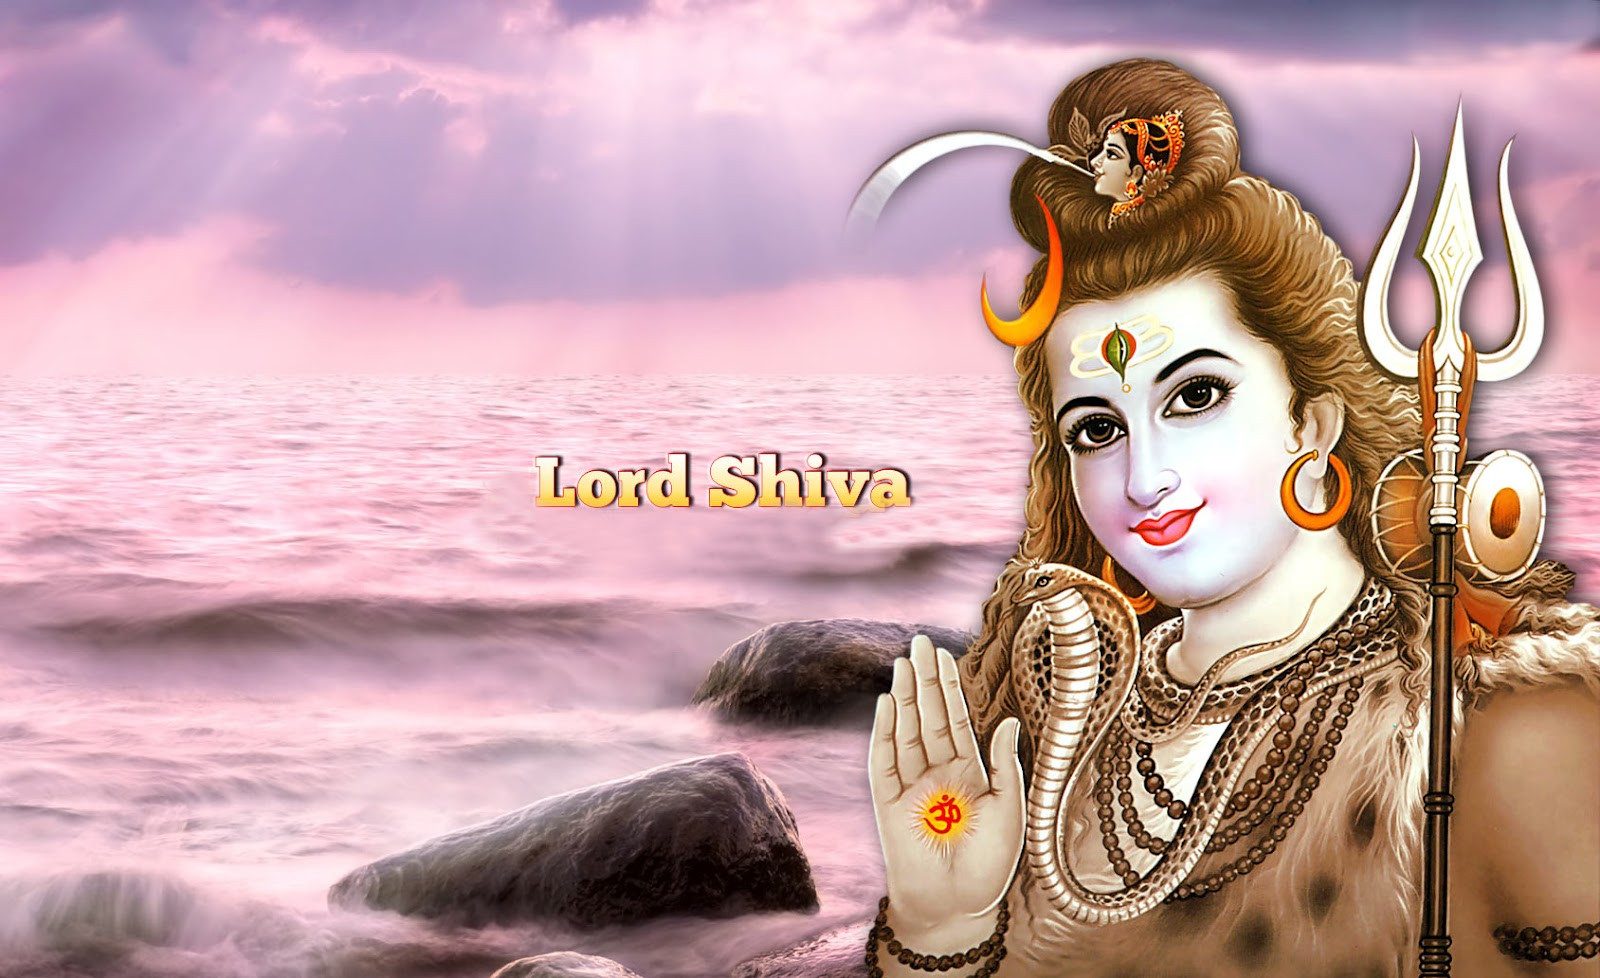 Lord Shiva Creative Hd Wallpapers For Free Download Lord: Lord Shiva Wallpaper And Beautiful Images